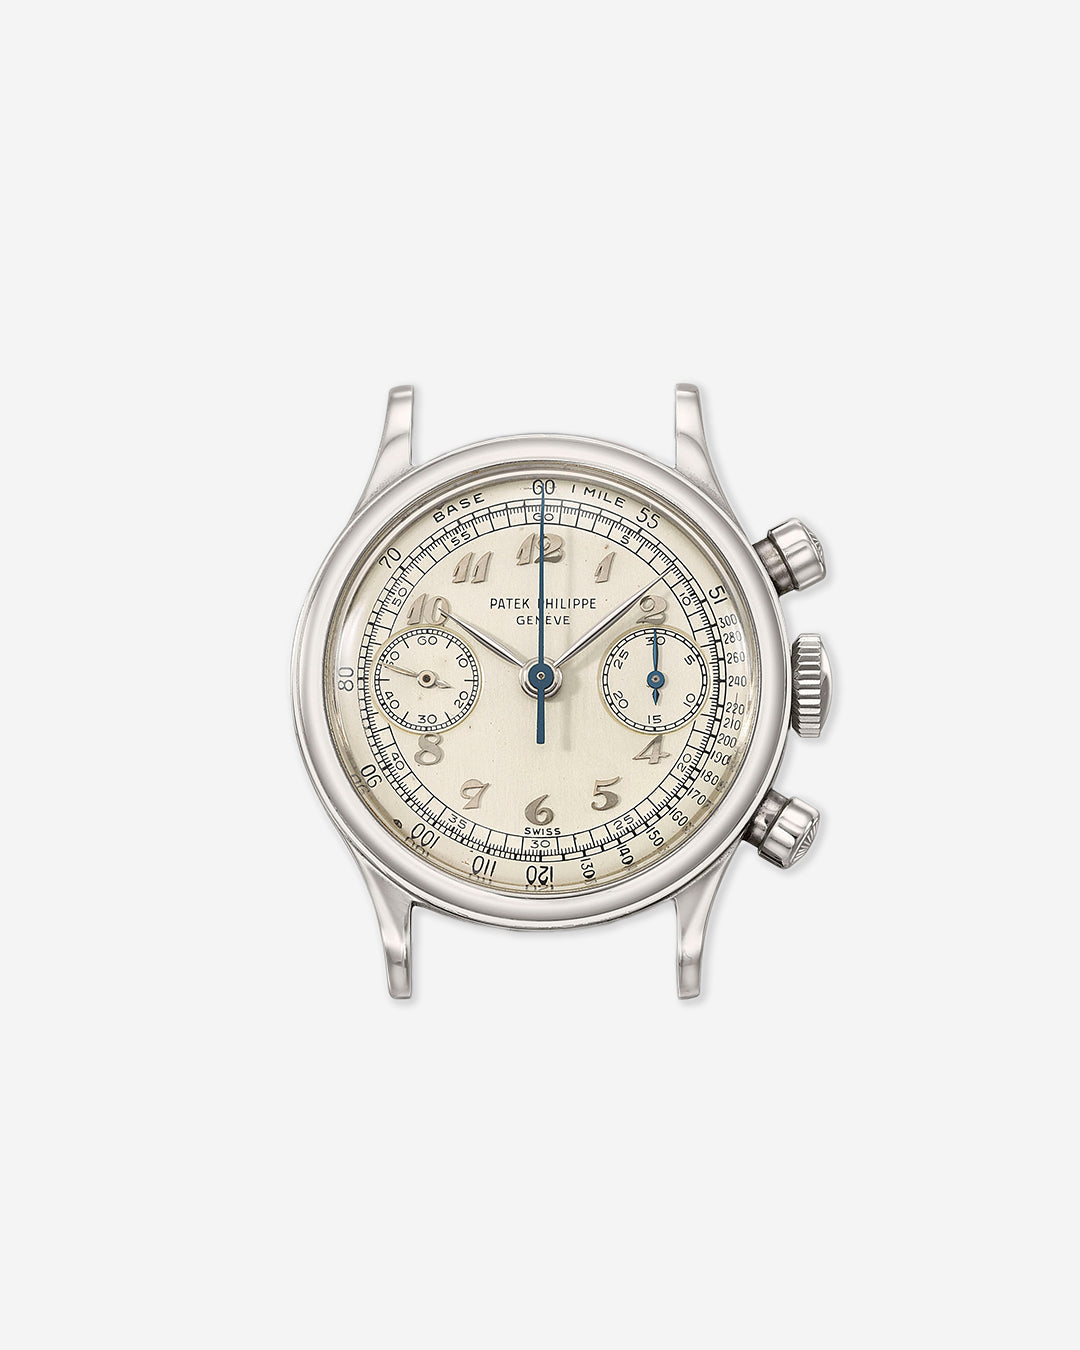 Patek Philippe 1463 on grey background in Borgel – The Master Casemaker you Haven't Heard Of for A Collected Man London